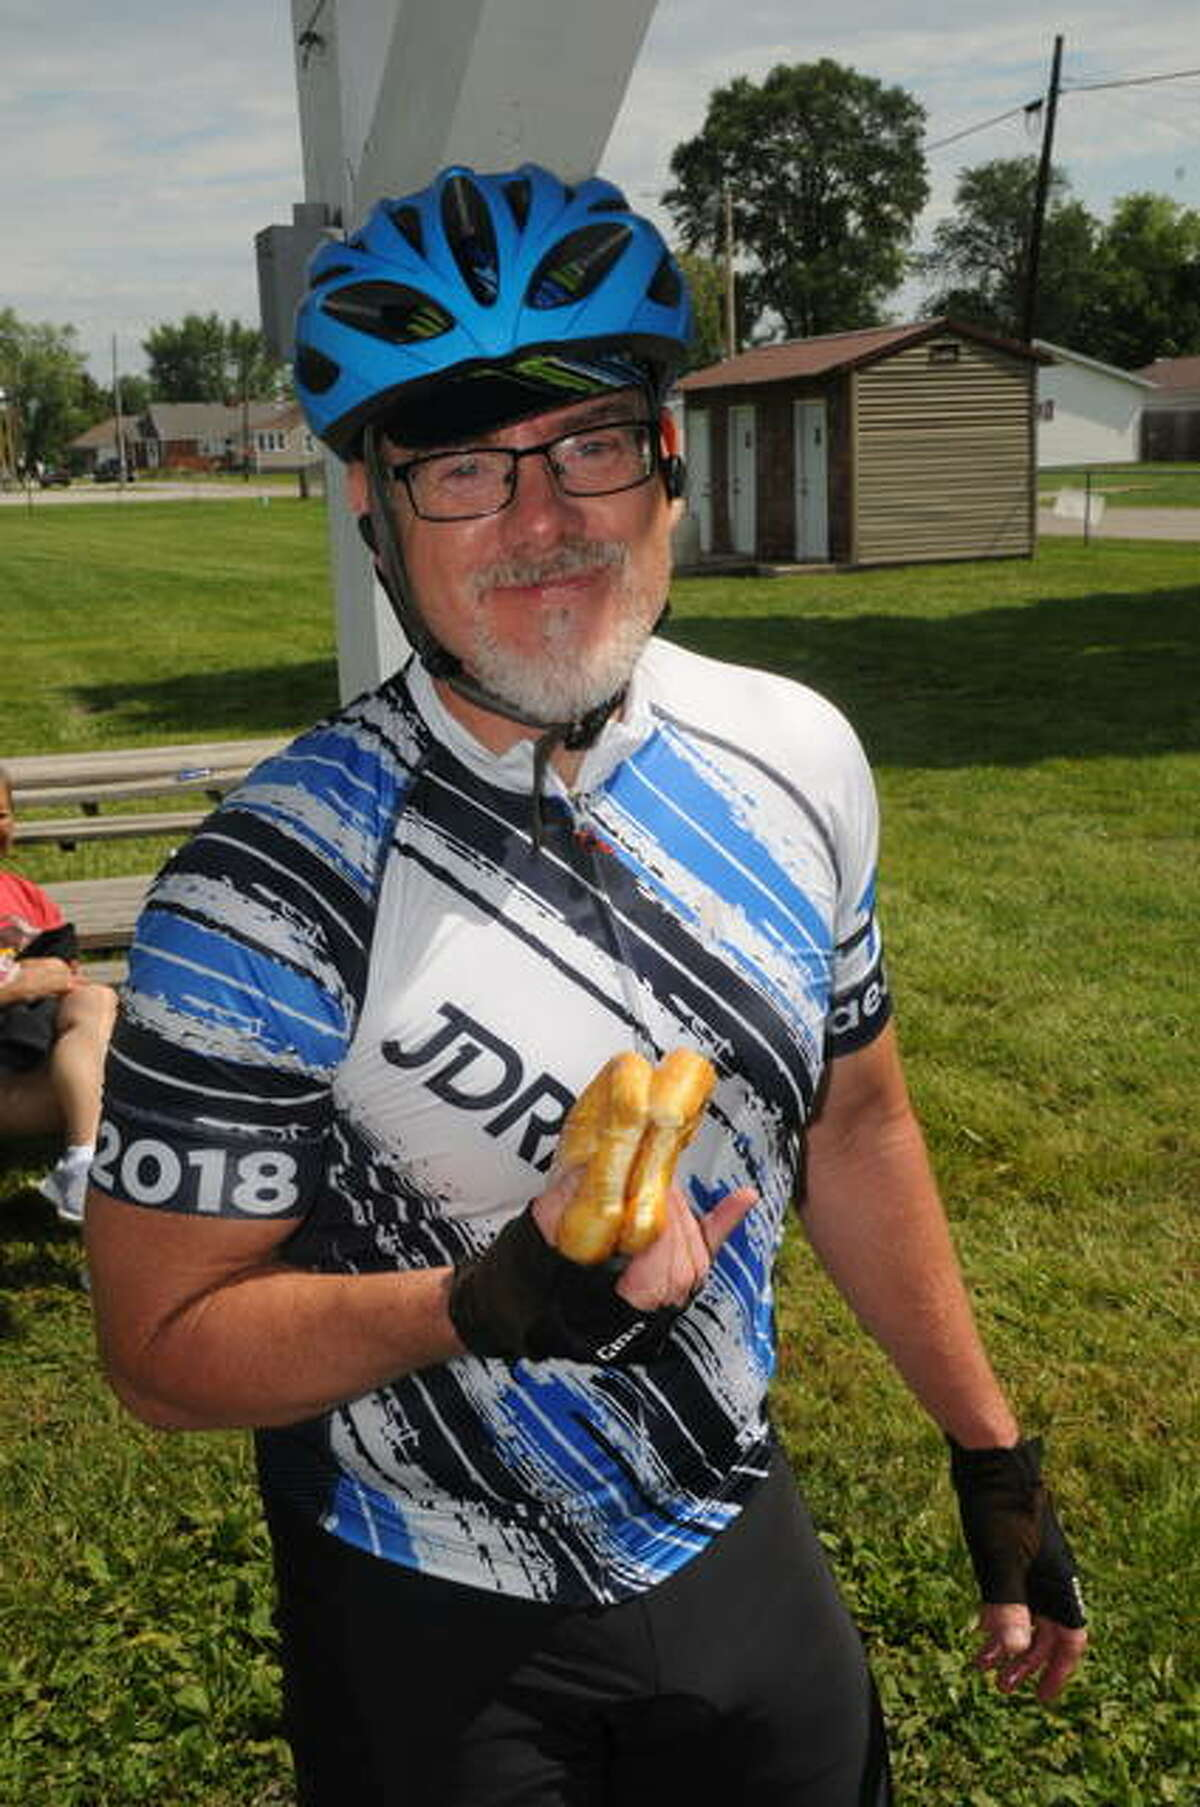 """Kevin Lilly of Naperville, Illinois munches donuts during the Eagarville stop on Saturday's Tour de Donut. The 32nd annual event in Staunton featured hundreds of bicyclists competing in a full 34-mile or a """"donut hole"""" 12-mile course."""